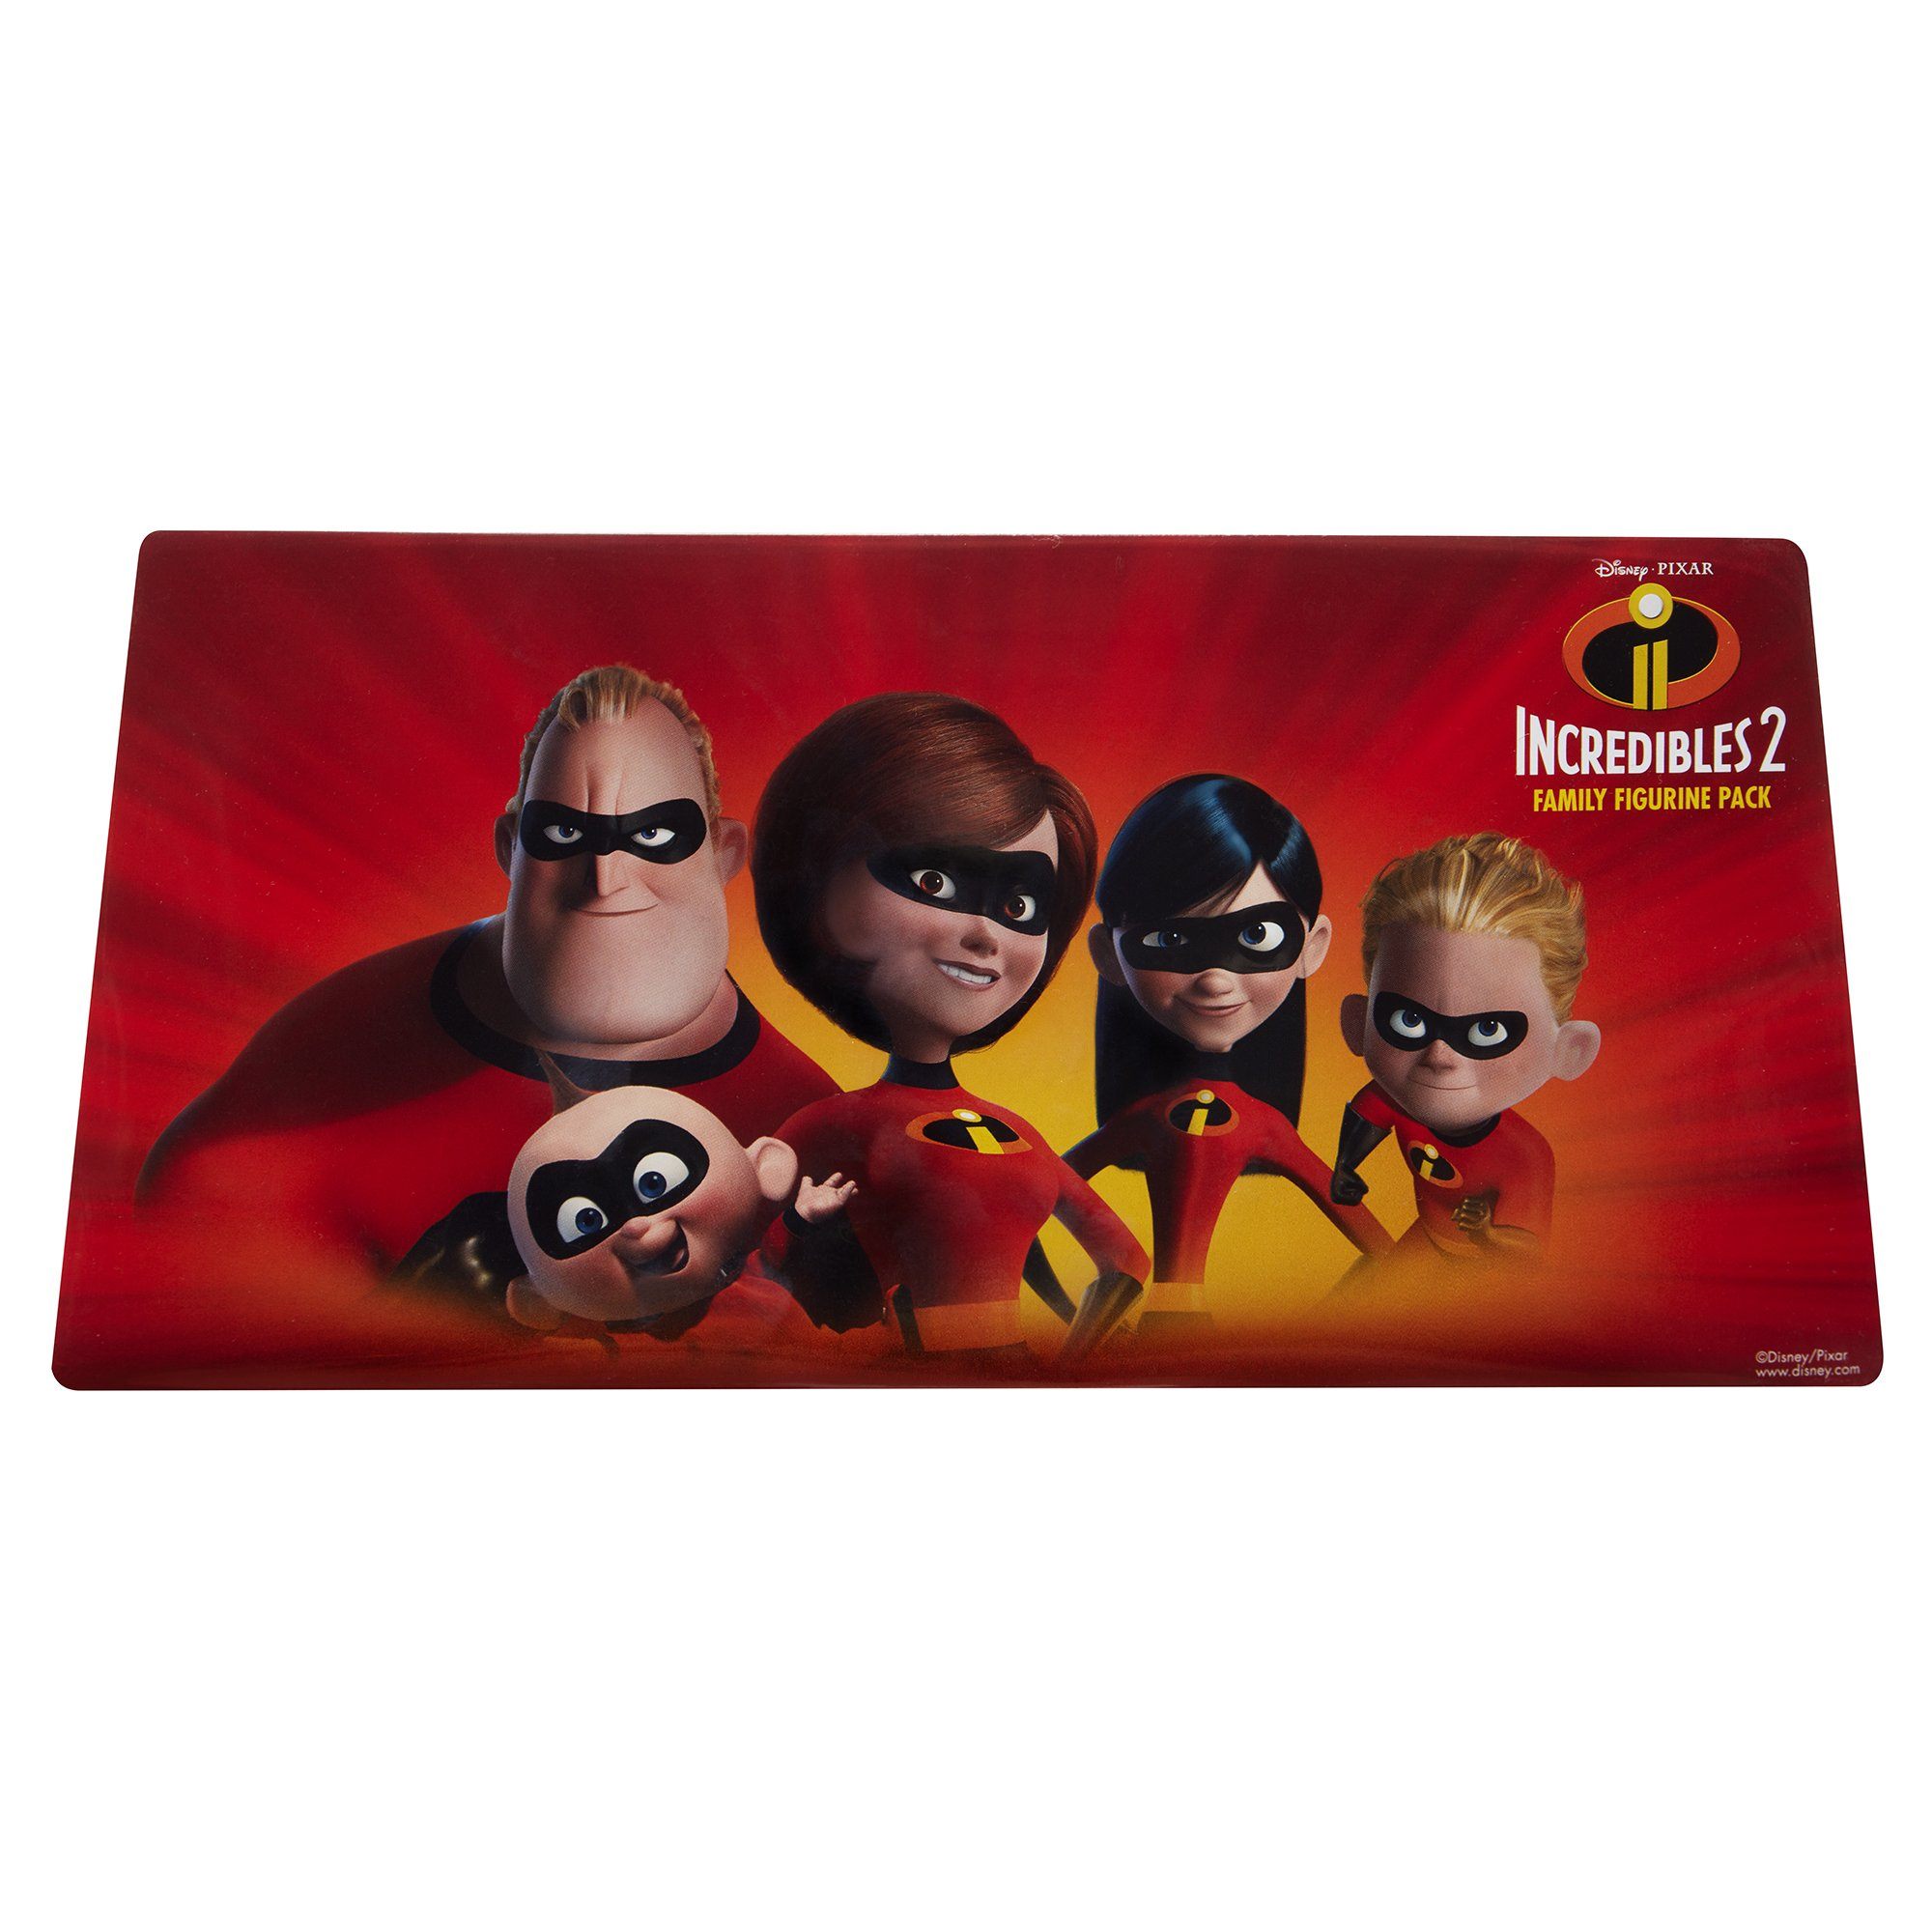 The Incredibles 2, 5 Piece Family Figure Set Comes with (Mr./Mrs. Incredible, Violet, Dash, Jack Jack) by The Incredibles 2 (Image #7)